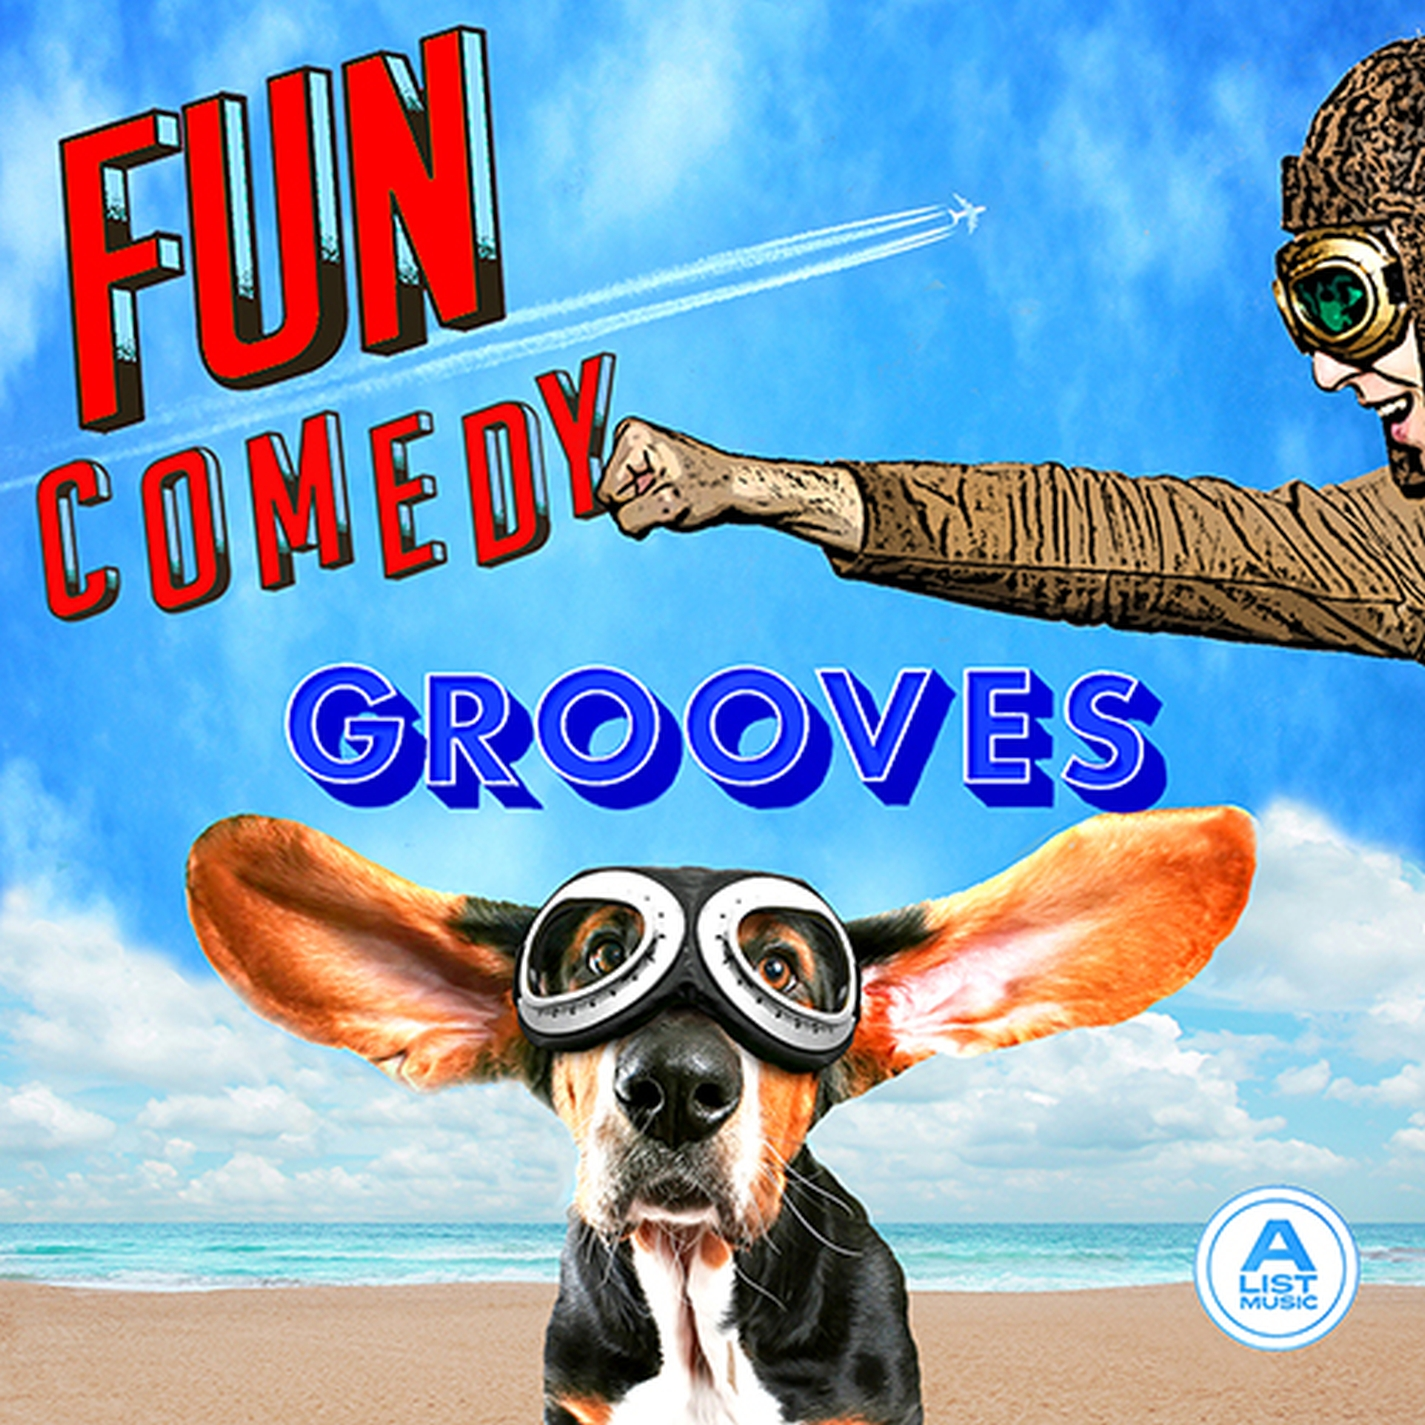 Fun Comedy Grooves - Action Comedy Styles